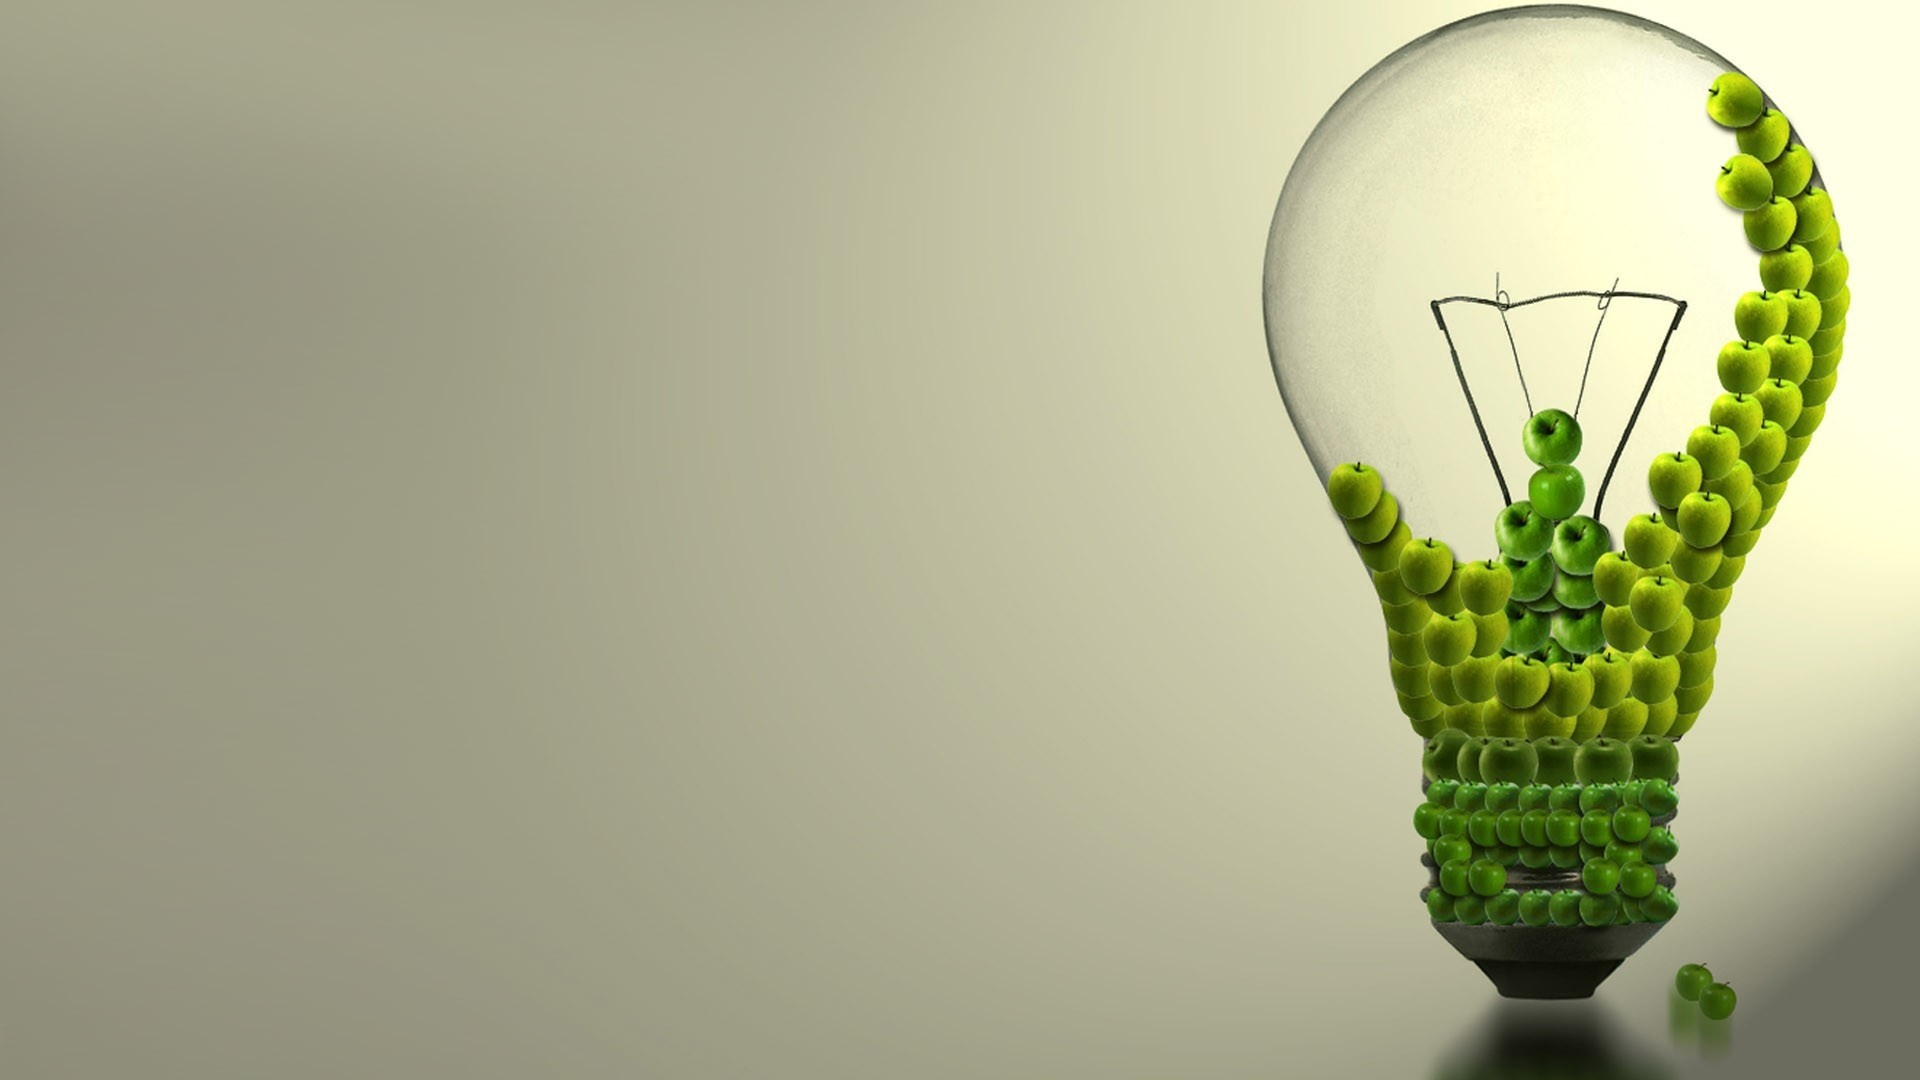 Energy Saving Wallpaper Picture hd